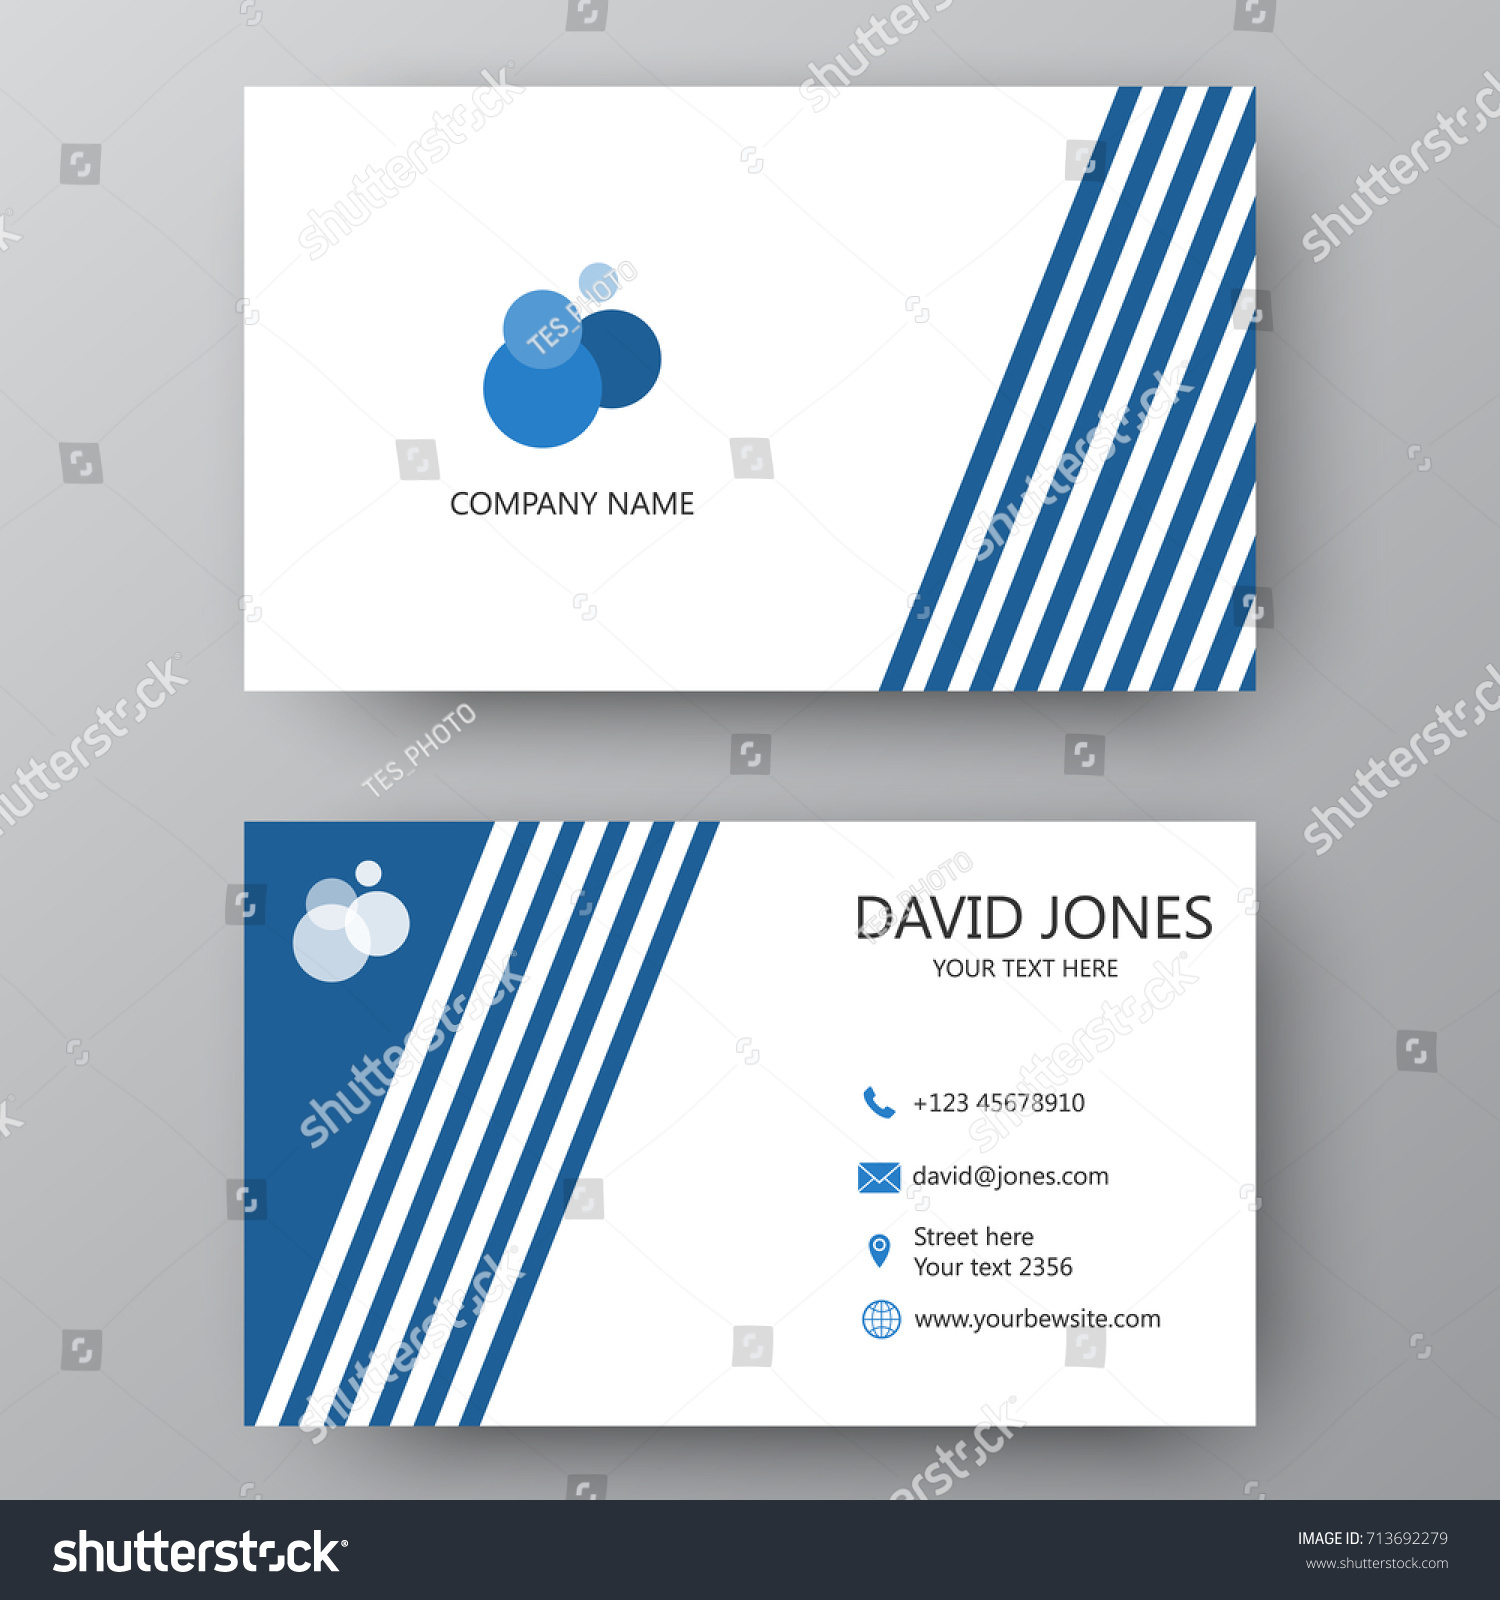 Vector Business Card Template Visiting Card Stock Vector Royalty Free 713692279